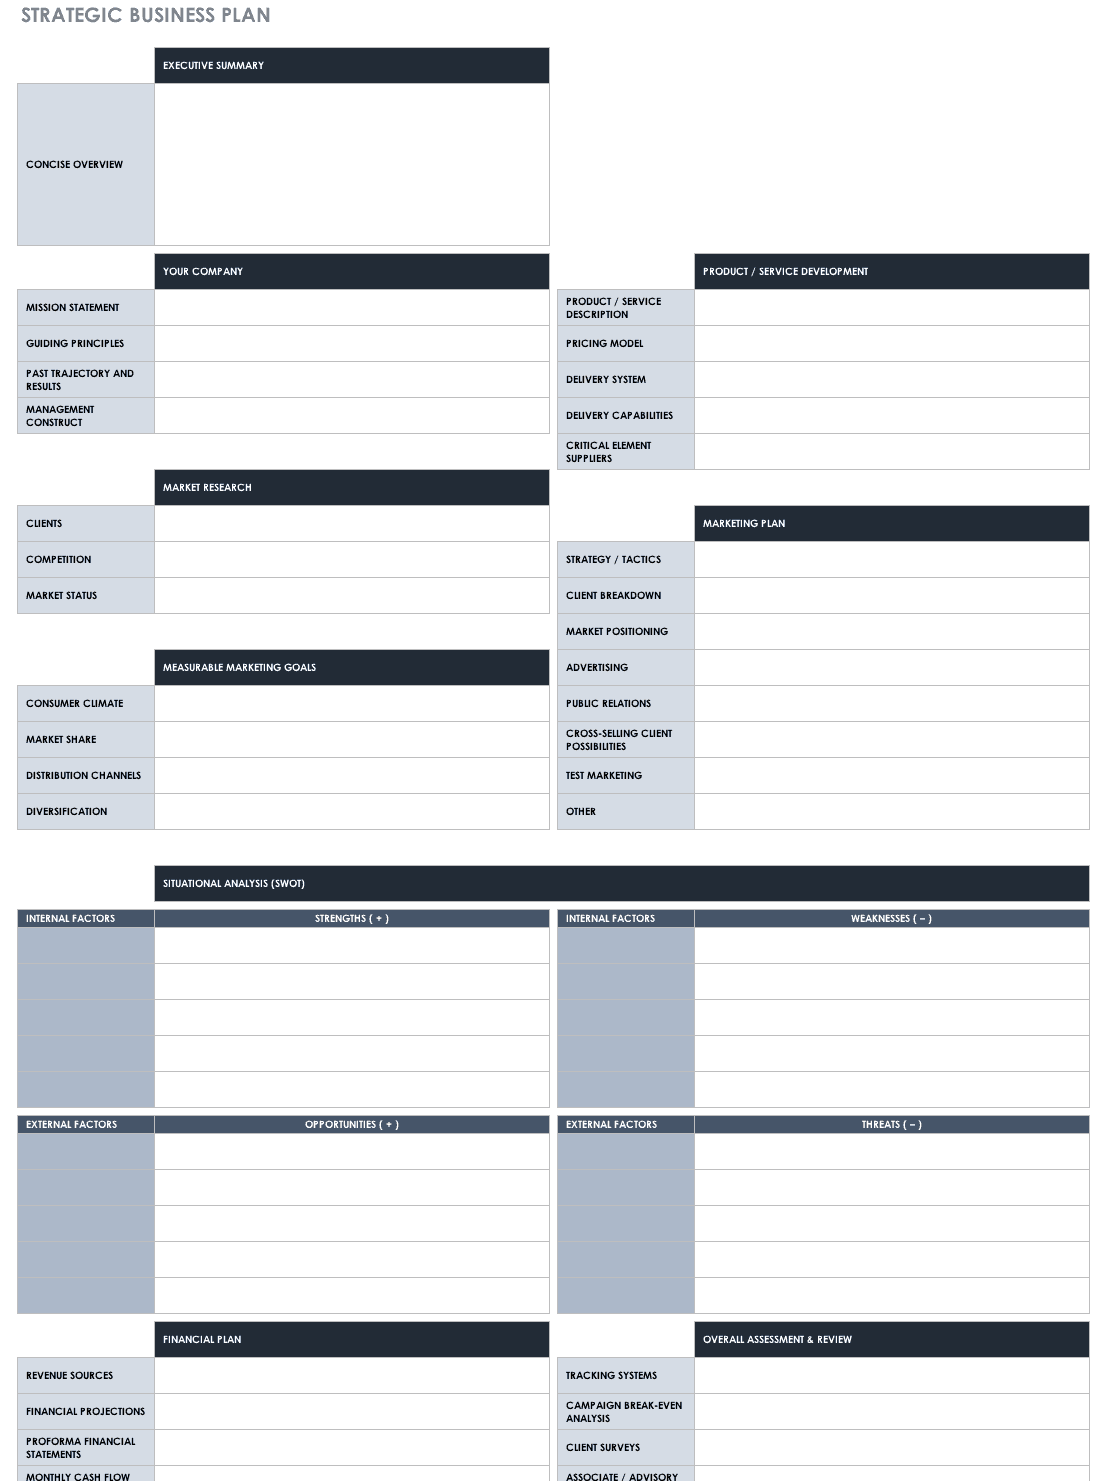 Free strategic planning templates smartsheet strategic business plan template accmission